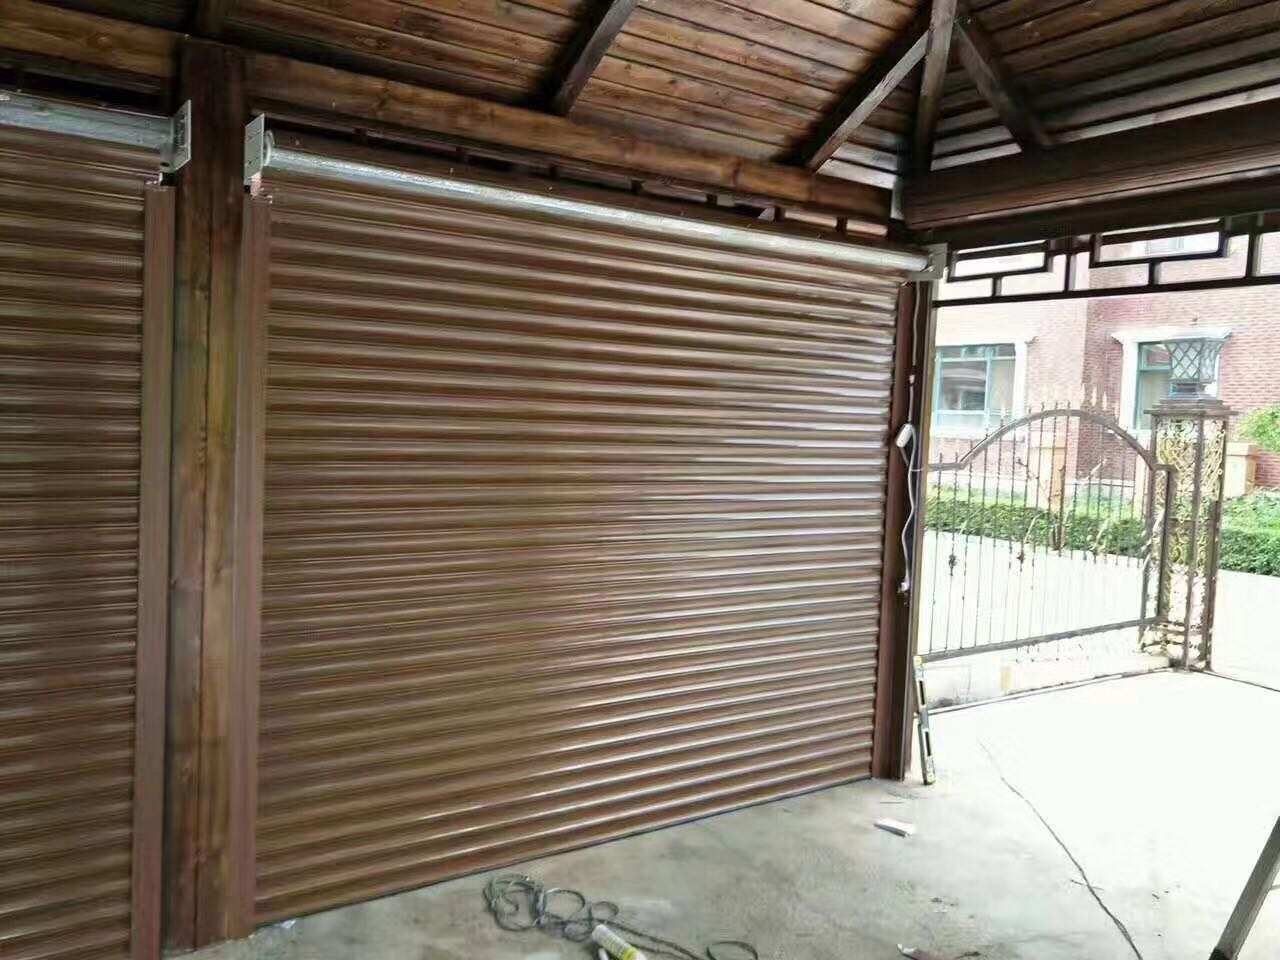 Shenyang wood grain garage door, aluminum alloy square hole rolling door, aluminum alloy grain insulation garage rolling door